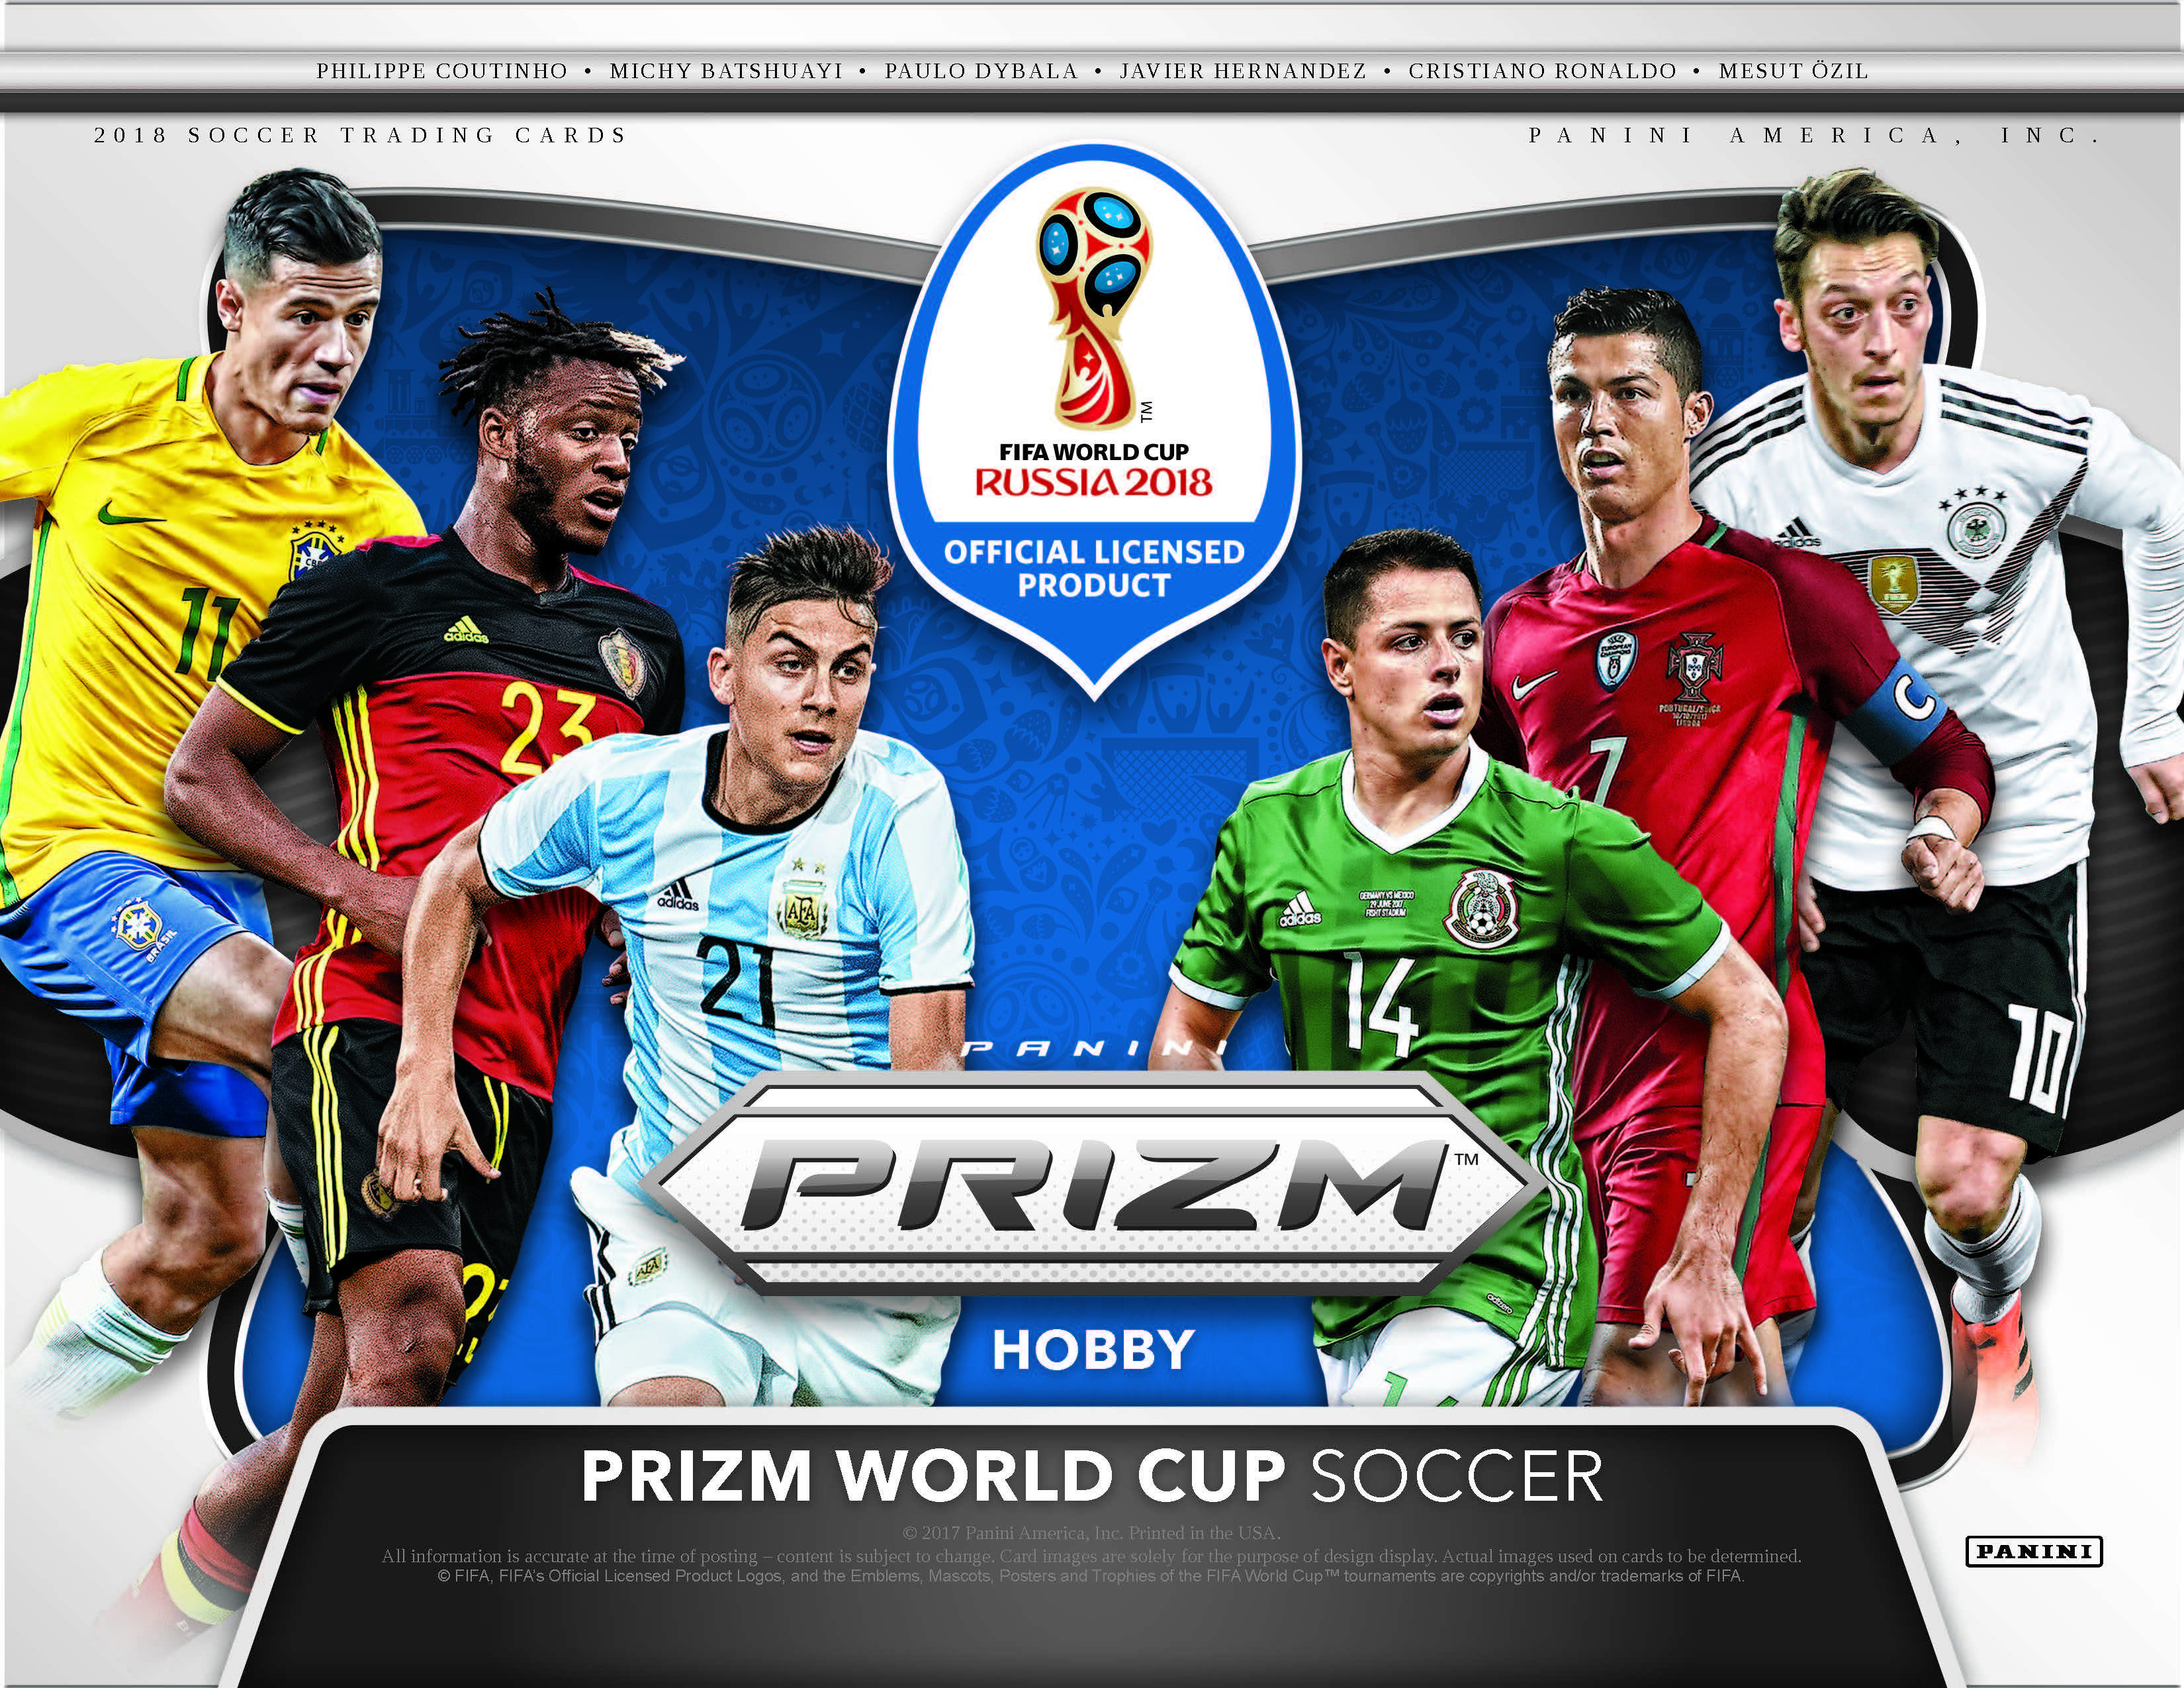 Panini Prizm World Cup Soccer Cards Gets Ready For Russia